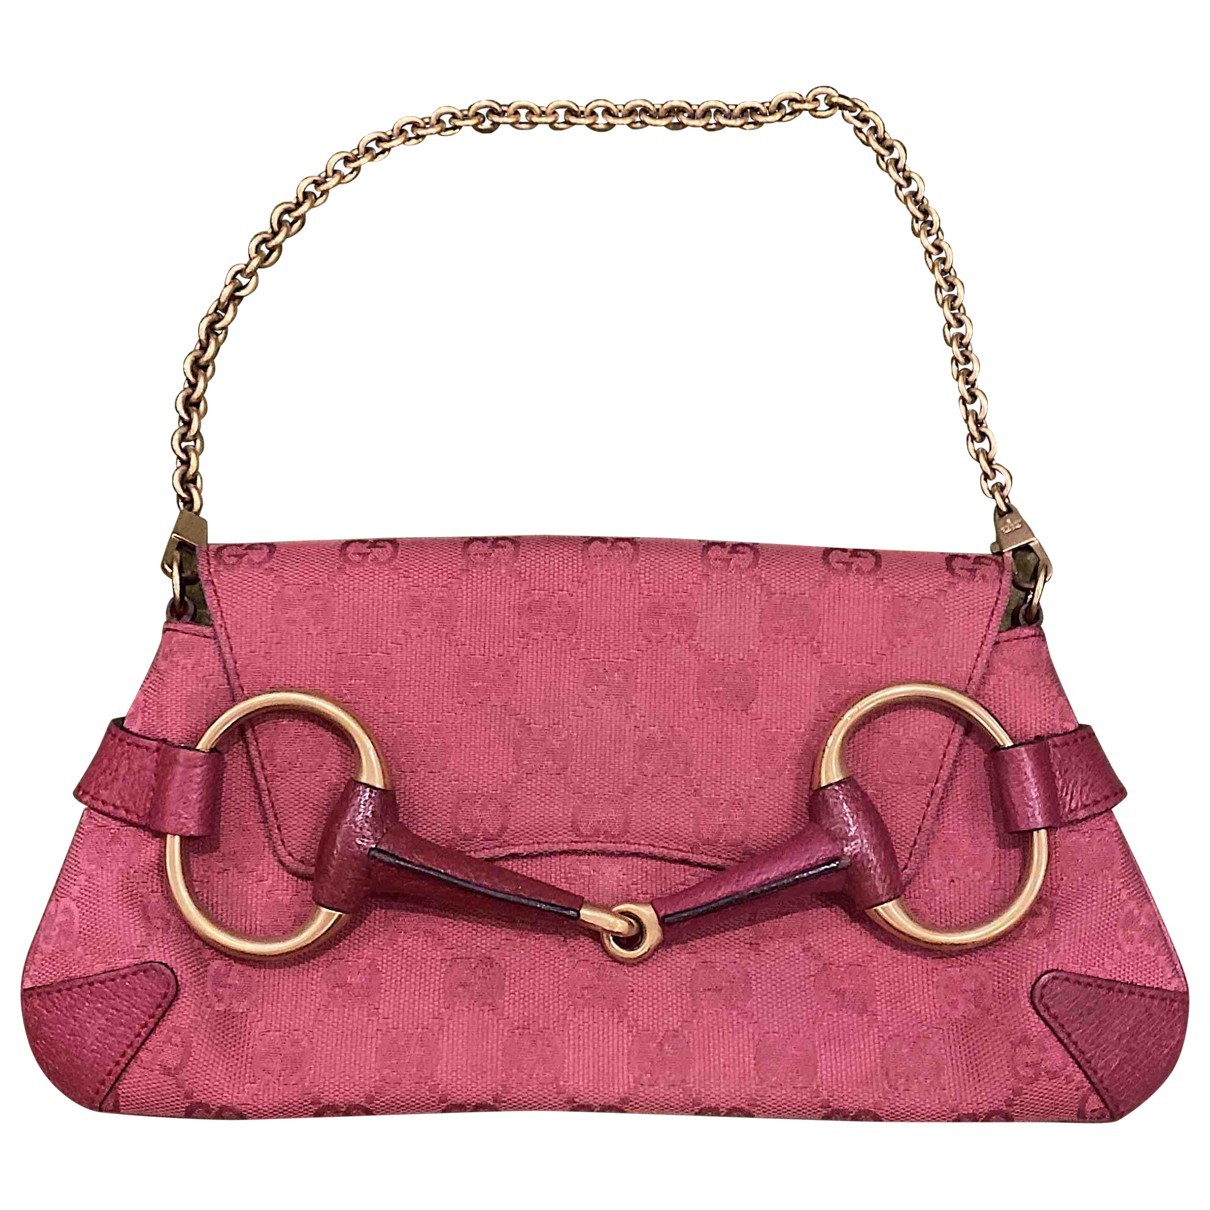 Gucci \N Pink Cloth handbag for Women \N